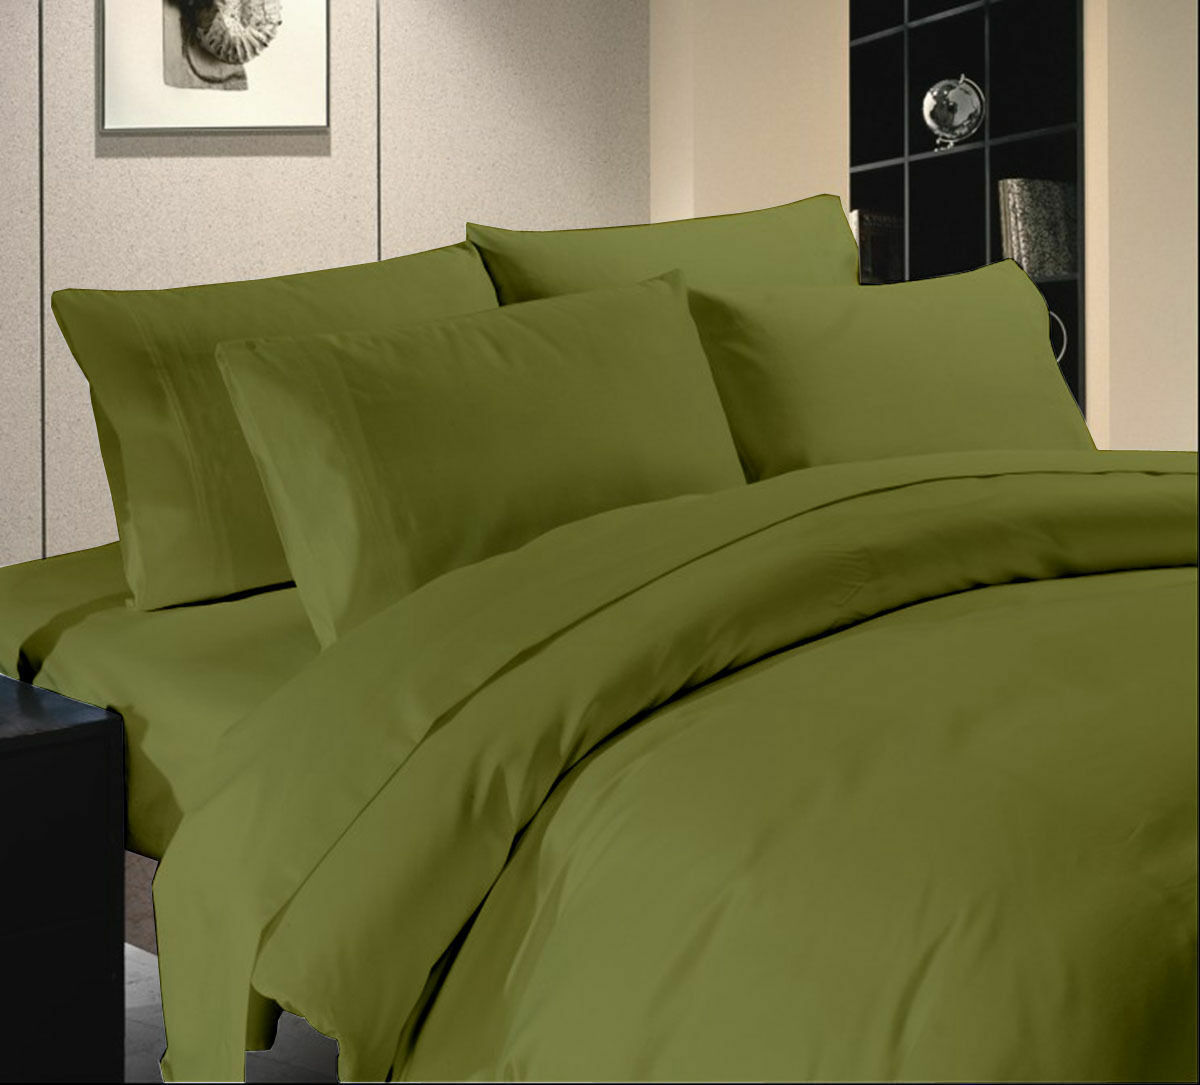 Olive Solid Extra Deep Pkt Sheet set 1000TC Egyptian Cotton